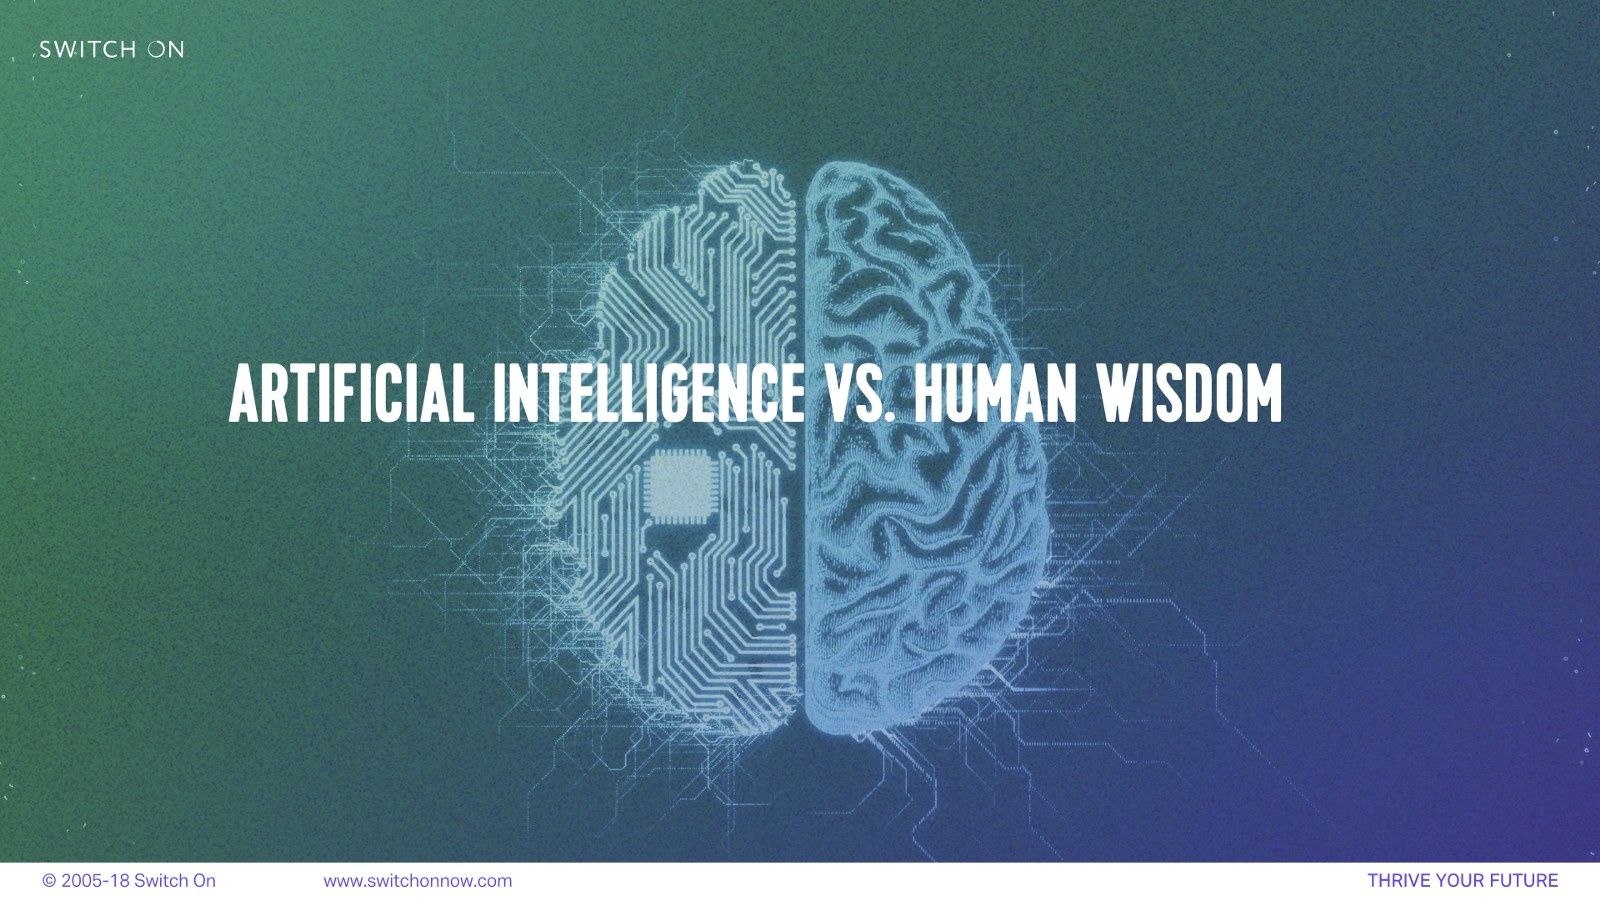 /leaders-vs-ai-there-aint-no-such-thing-as-artificial-wisdom-8556e45dfc89 feature image